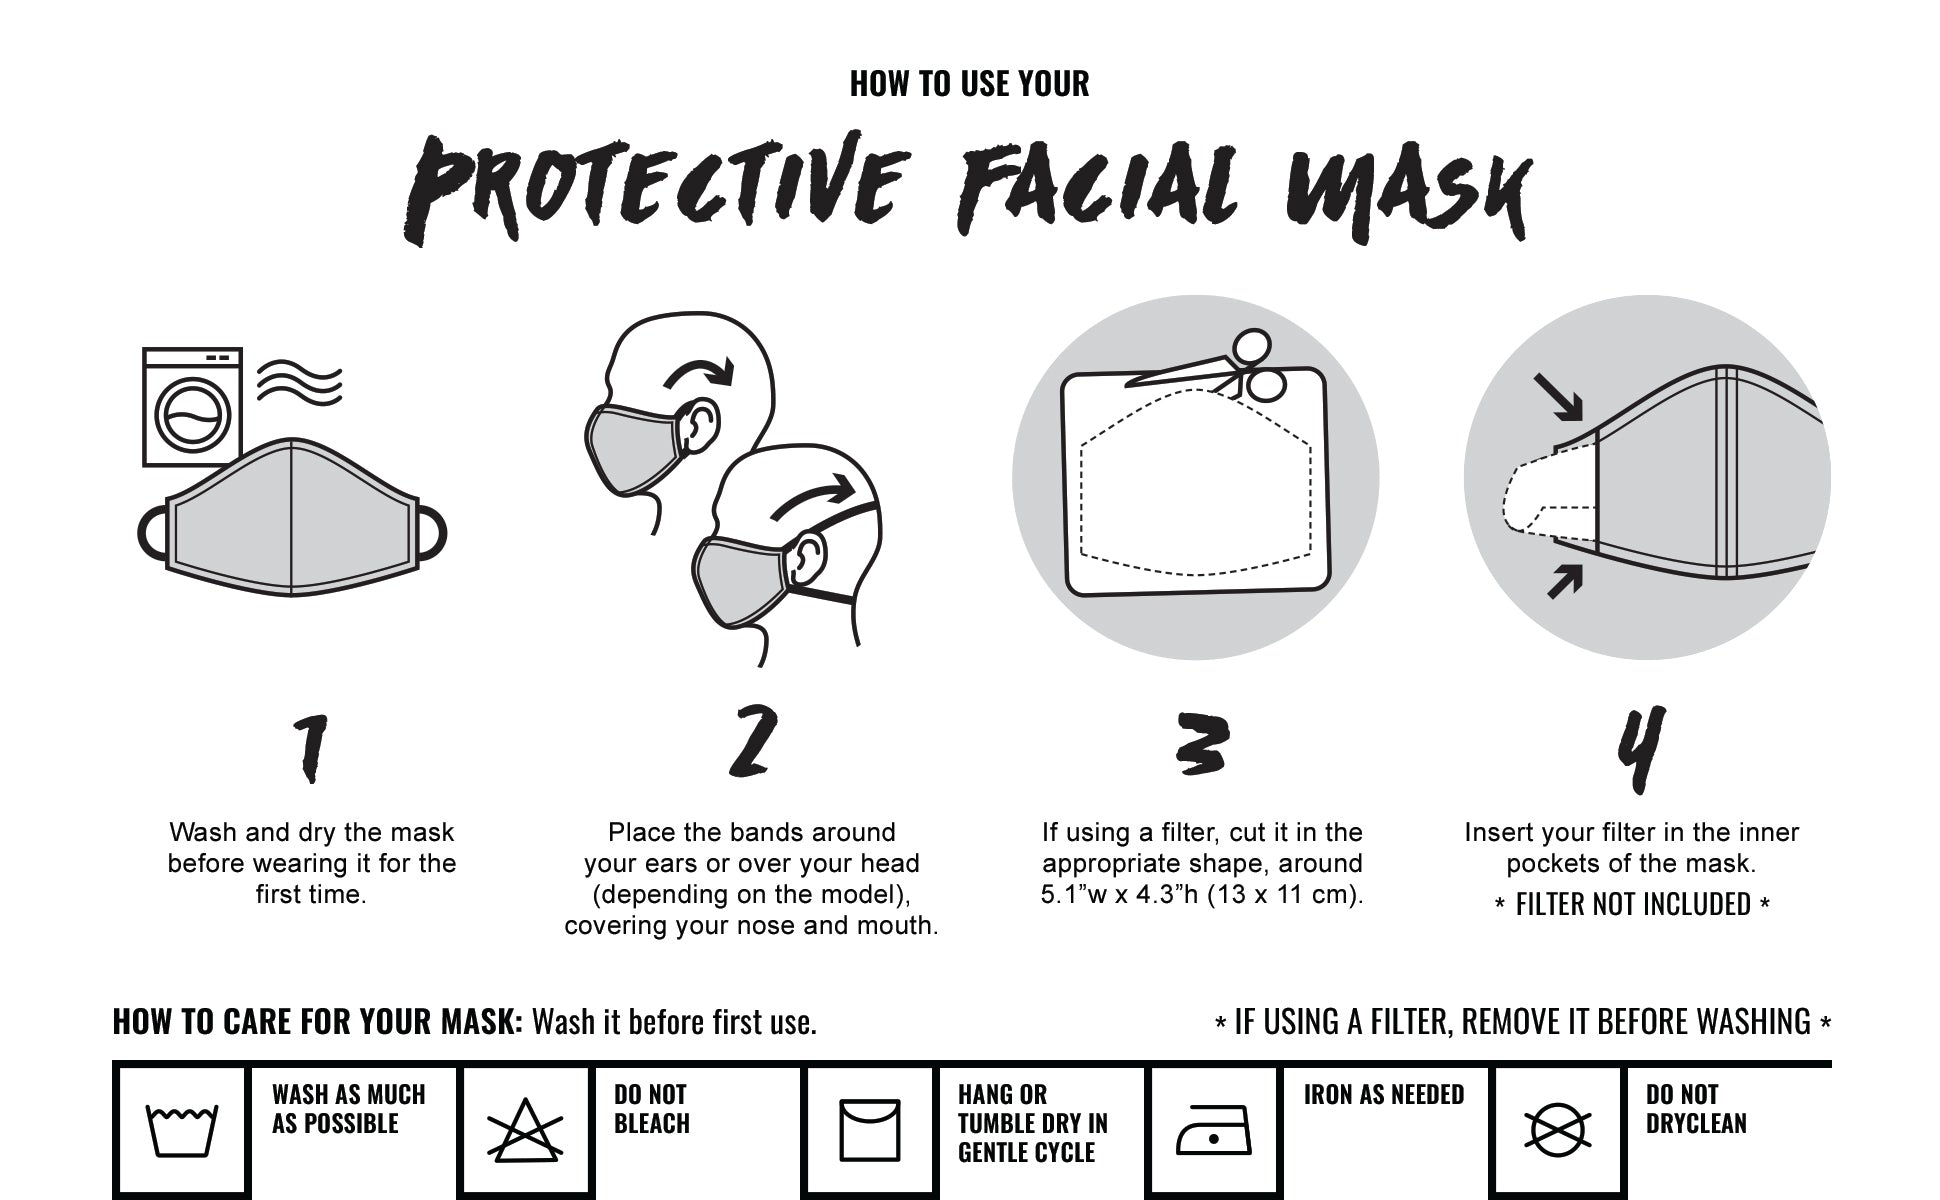 How to use our Under NY Sky Protective Facial Masks - Pocket For Filter - Washing Tips